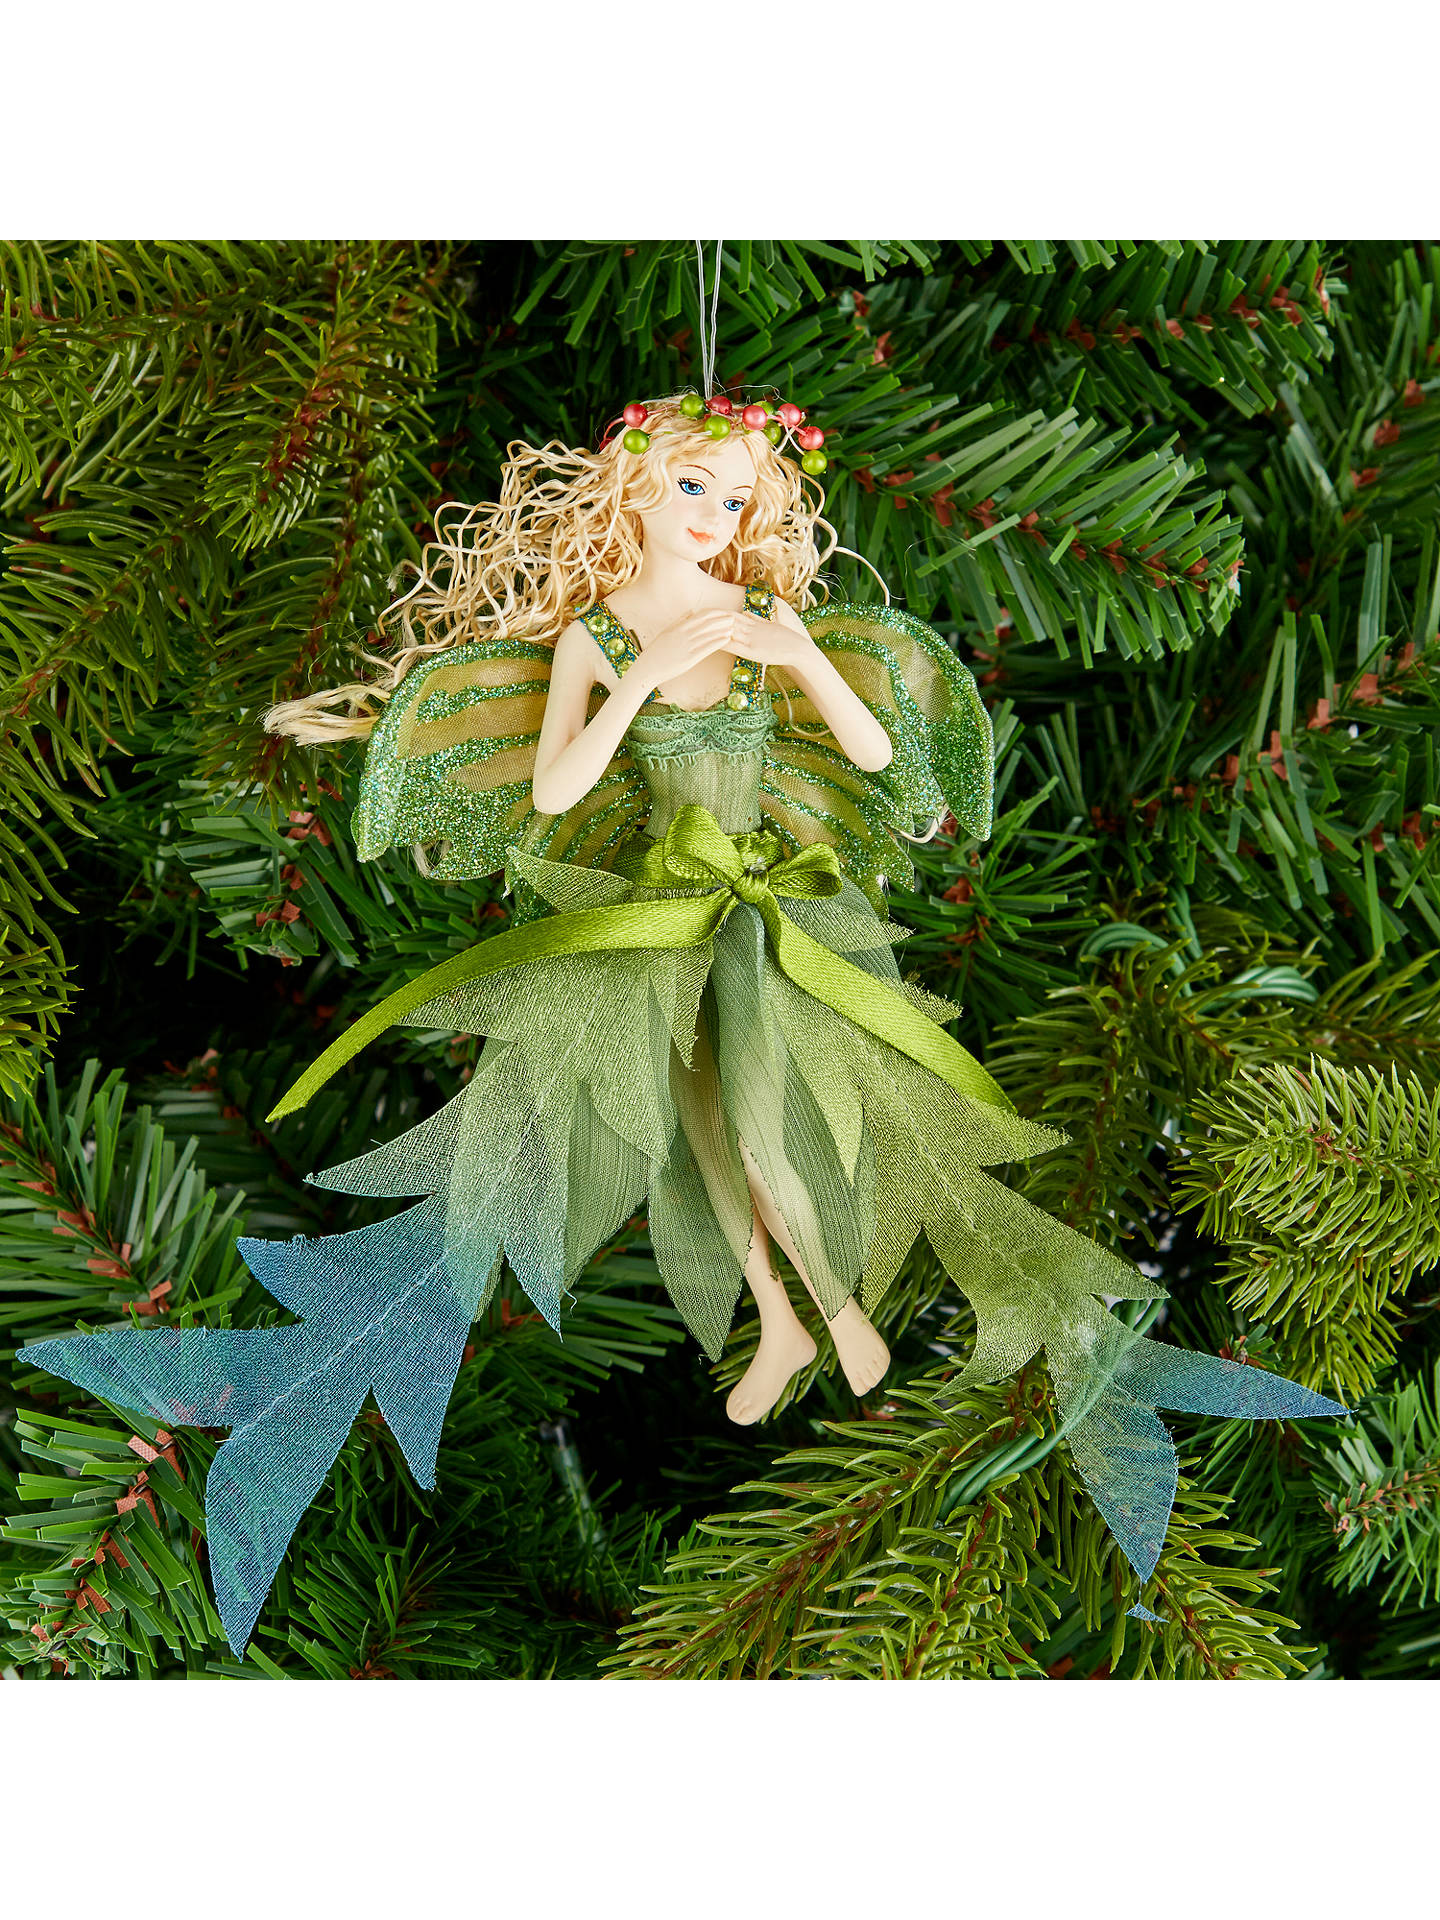 John Lewis Christmas Tree Decorations.John Lewis Into The Woods Woodland Fairy Tree Decoration At